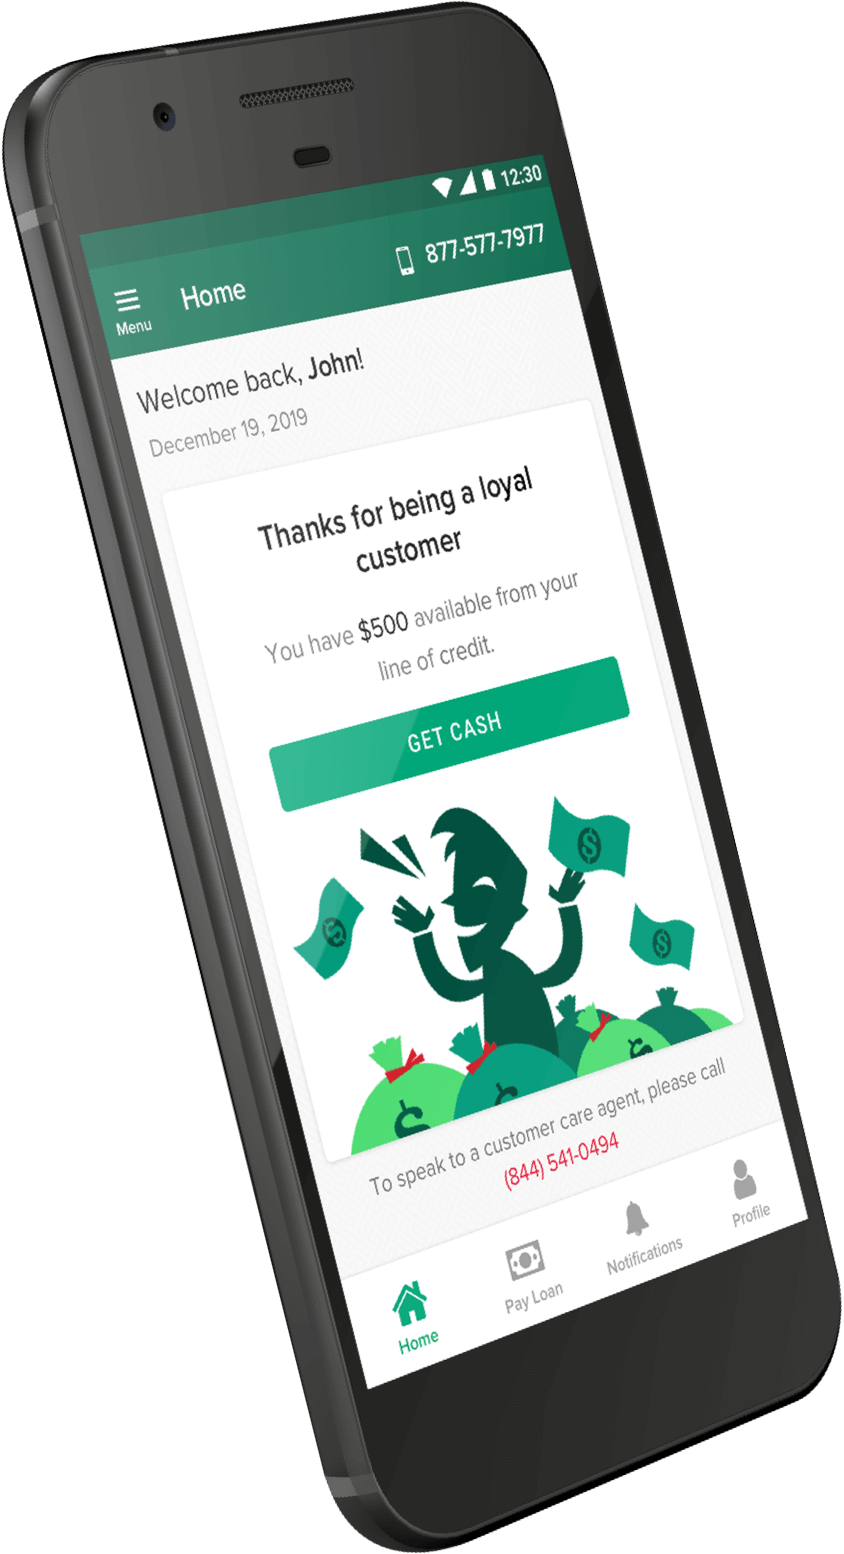 Example of an account within the Check Into Cash app shown on a mobile screen